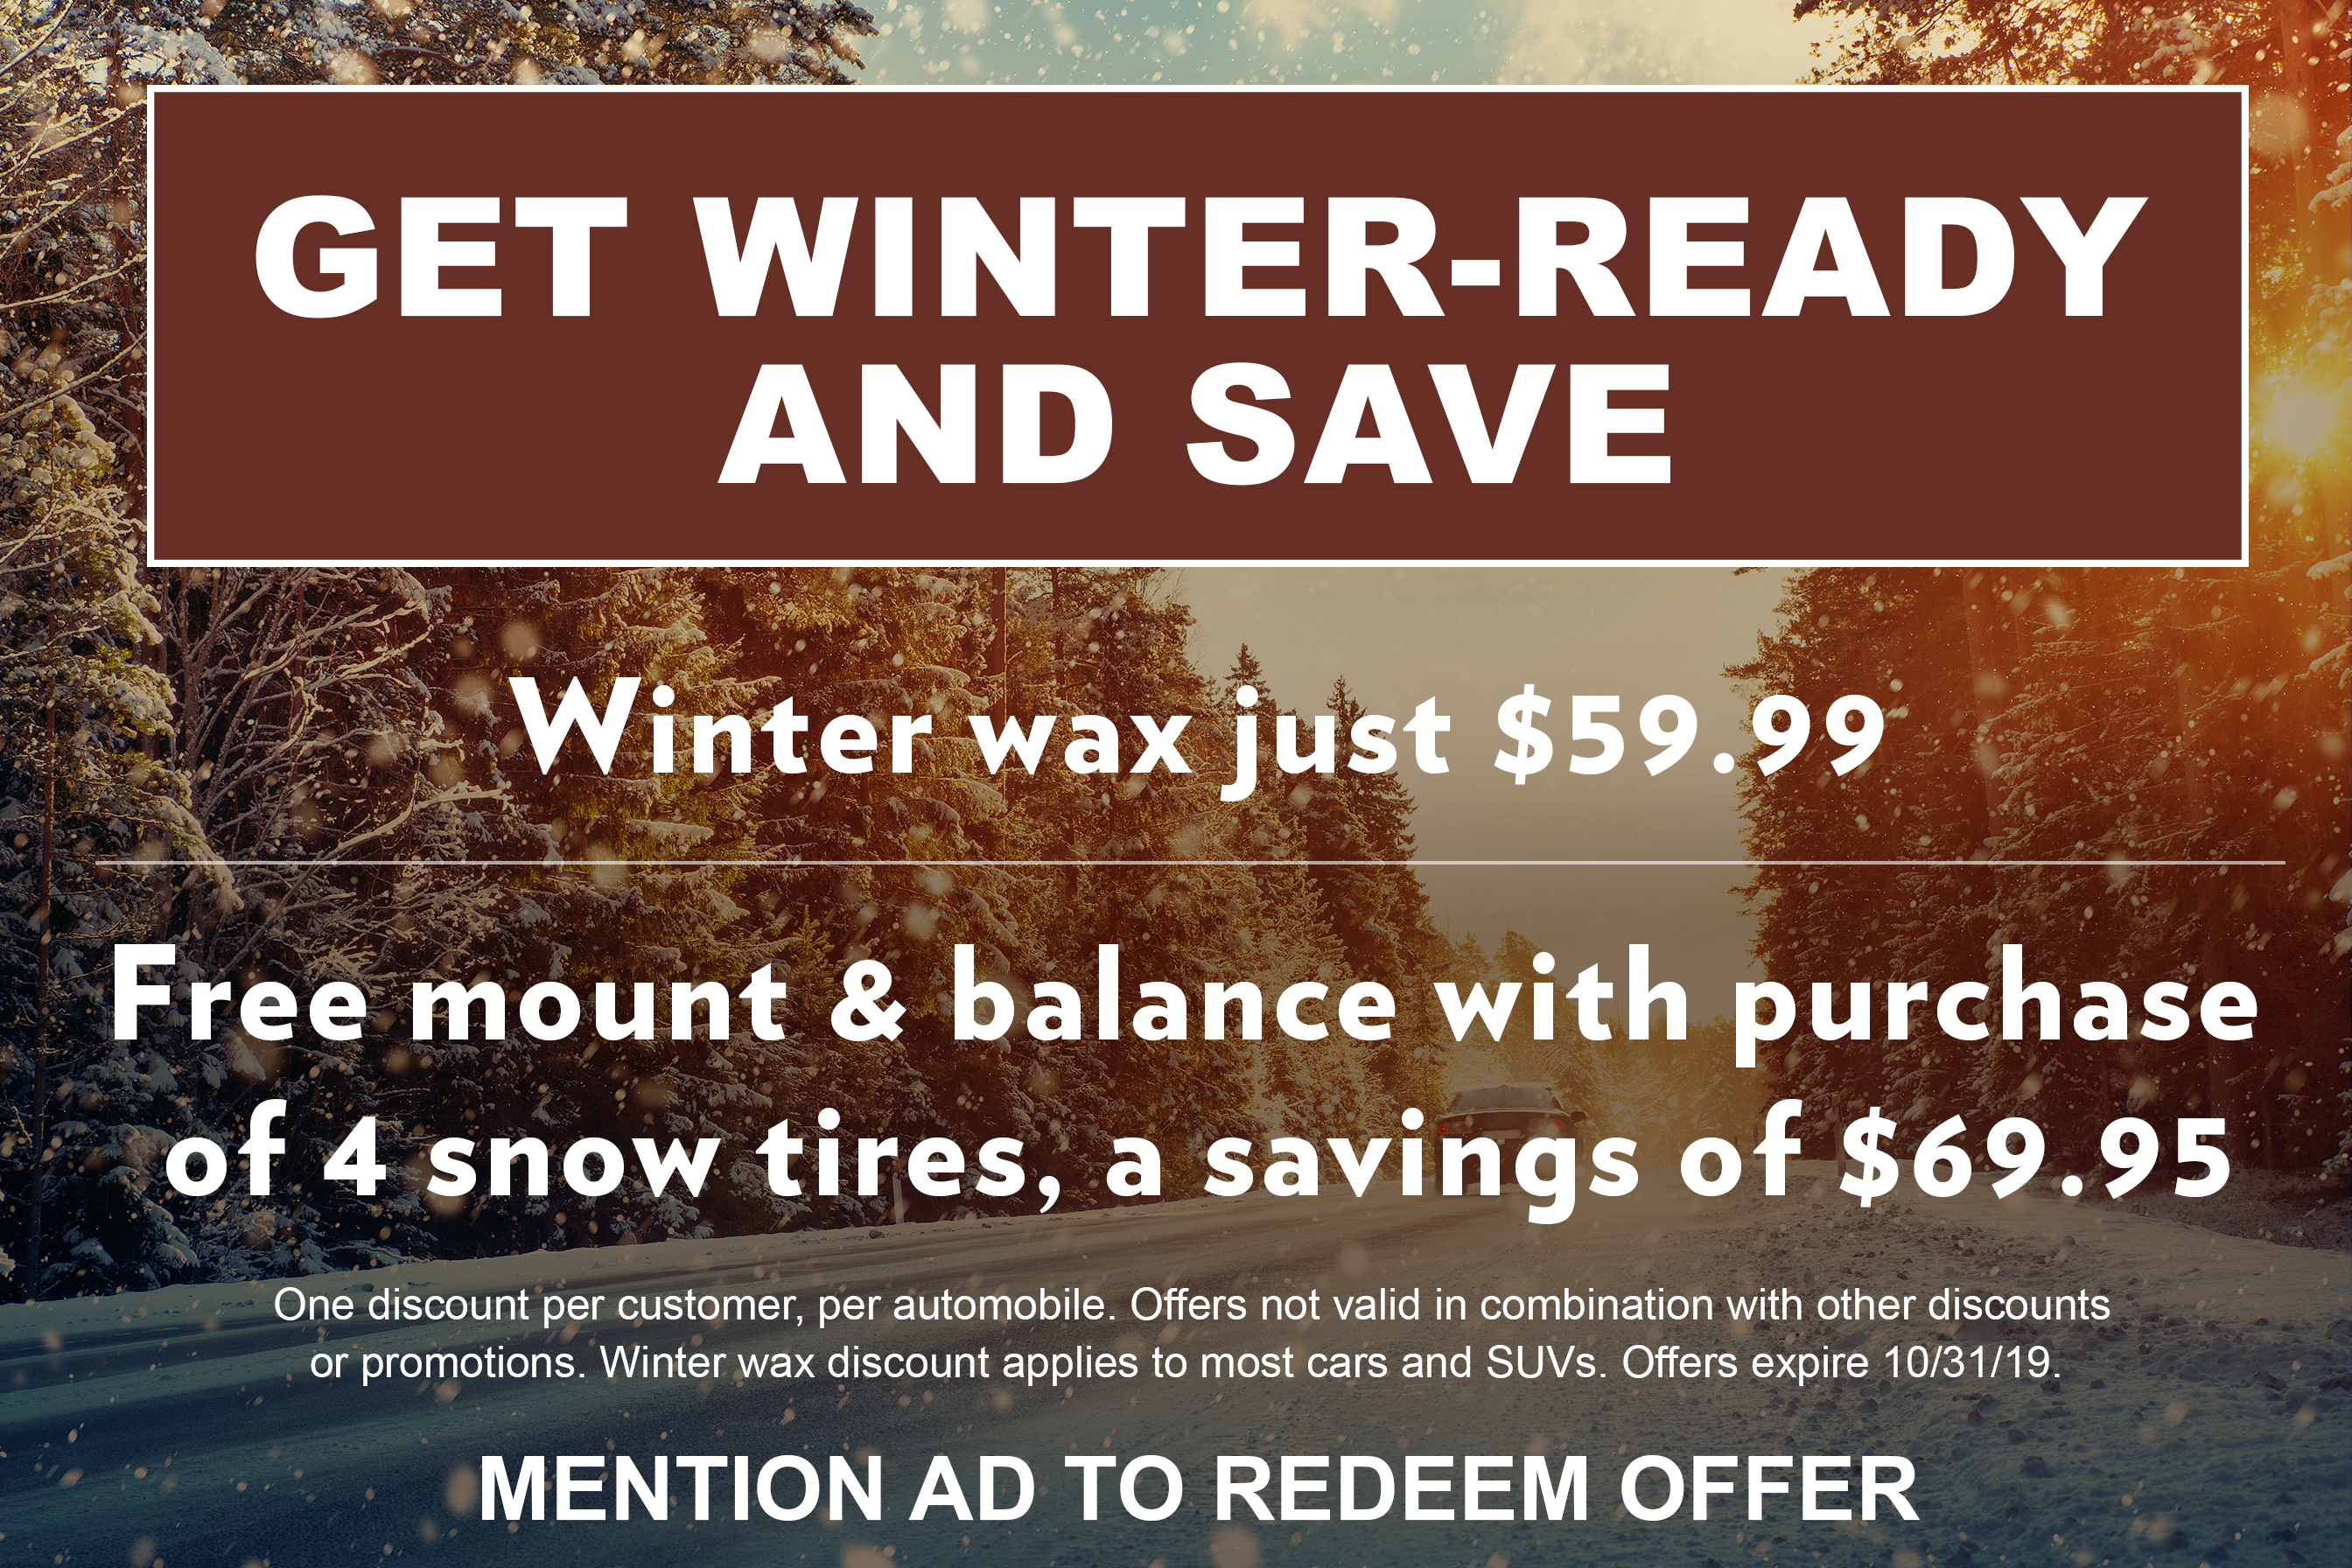 Get Winter Ready and Save